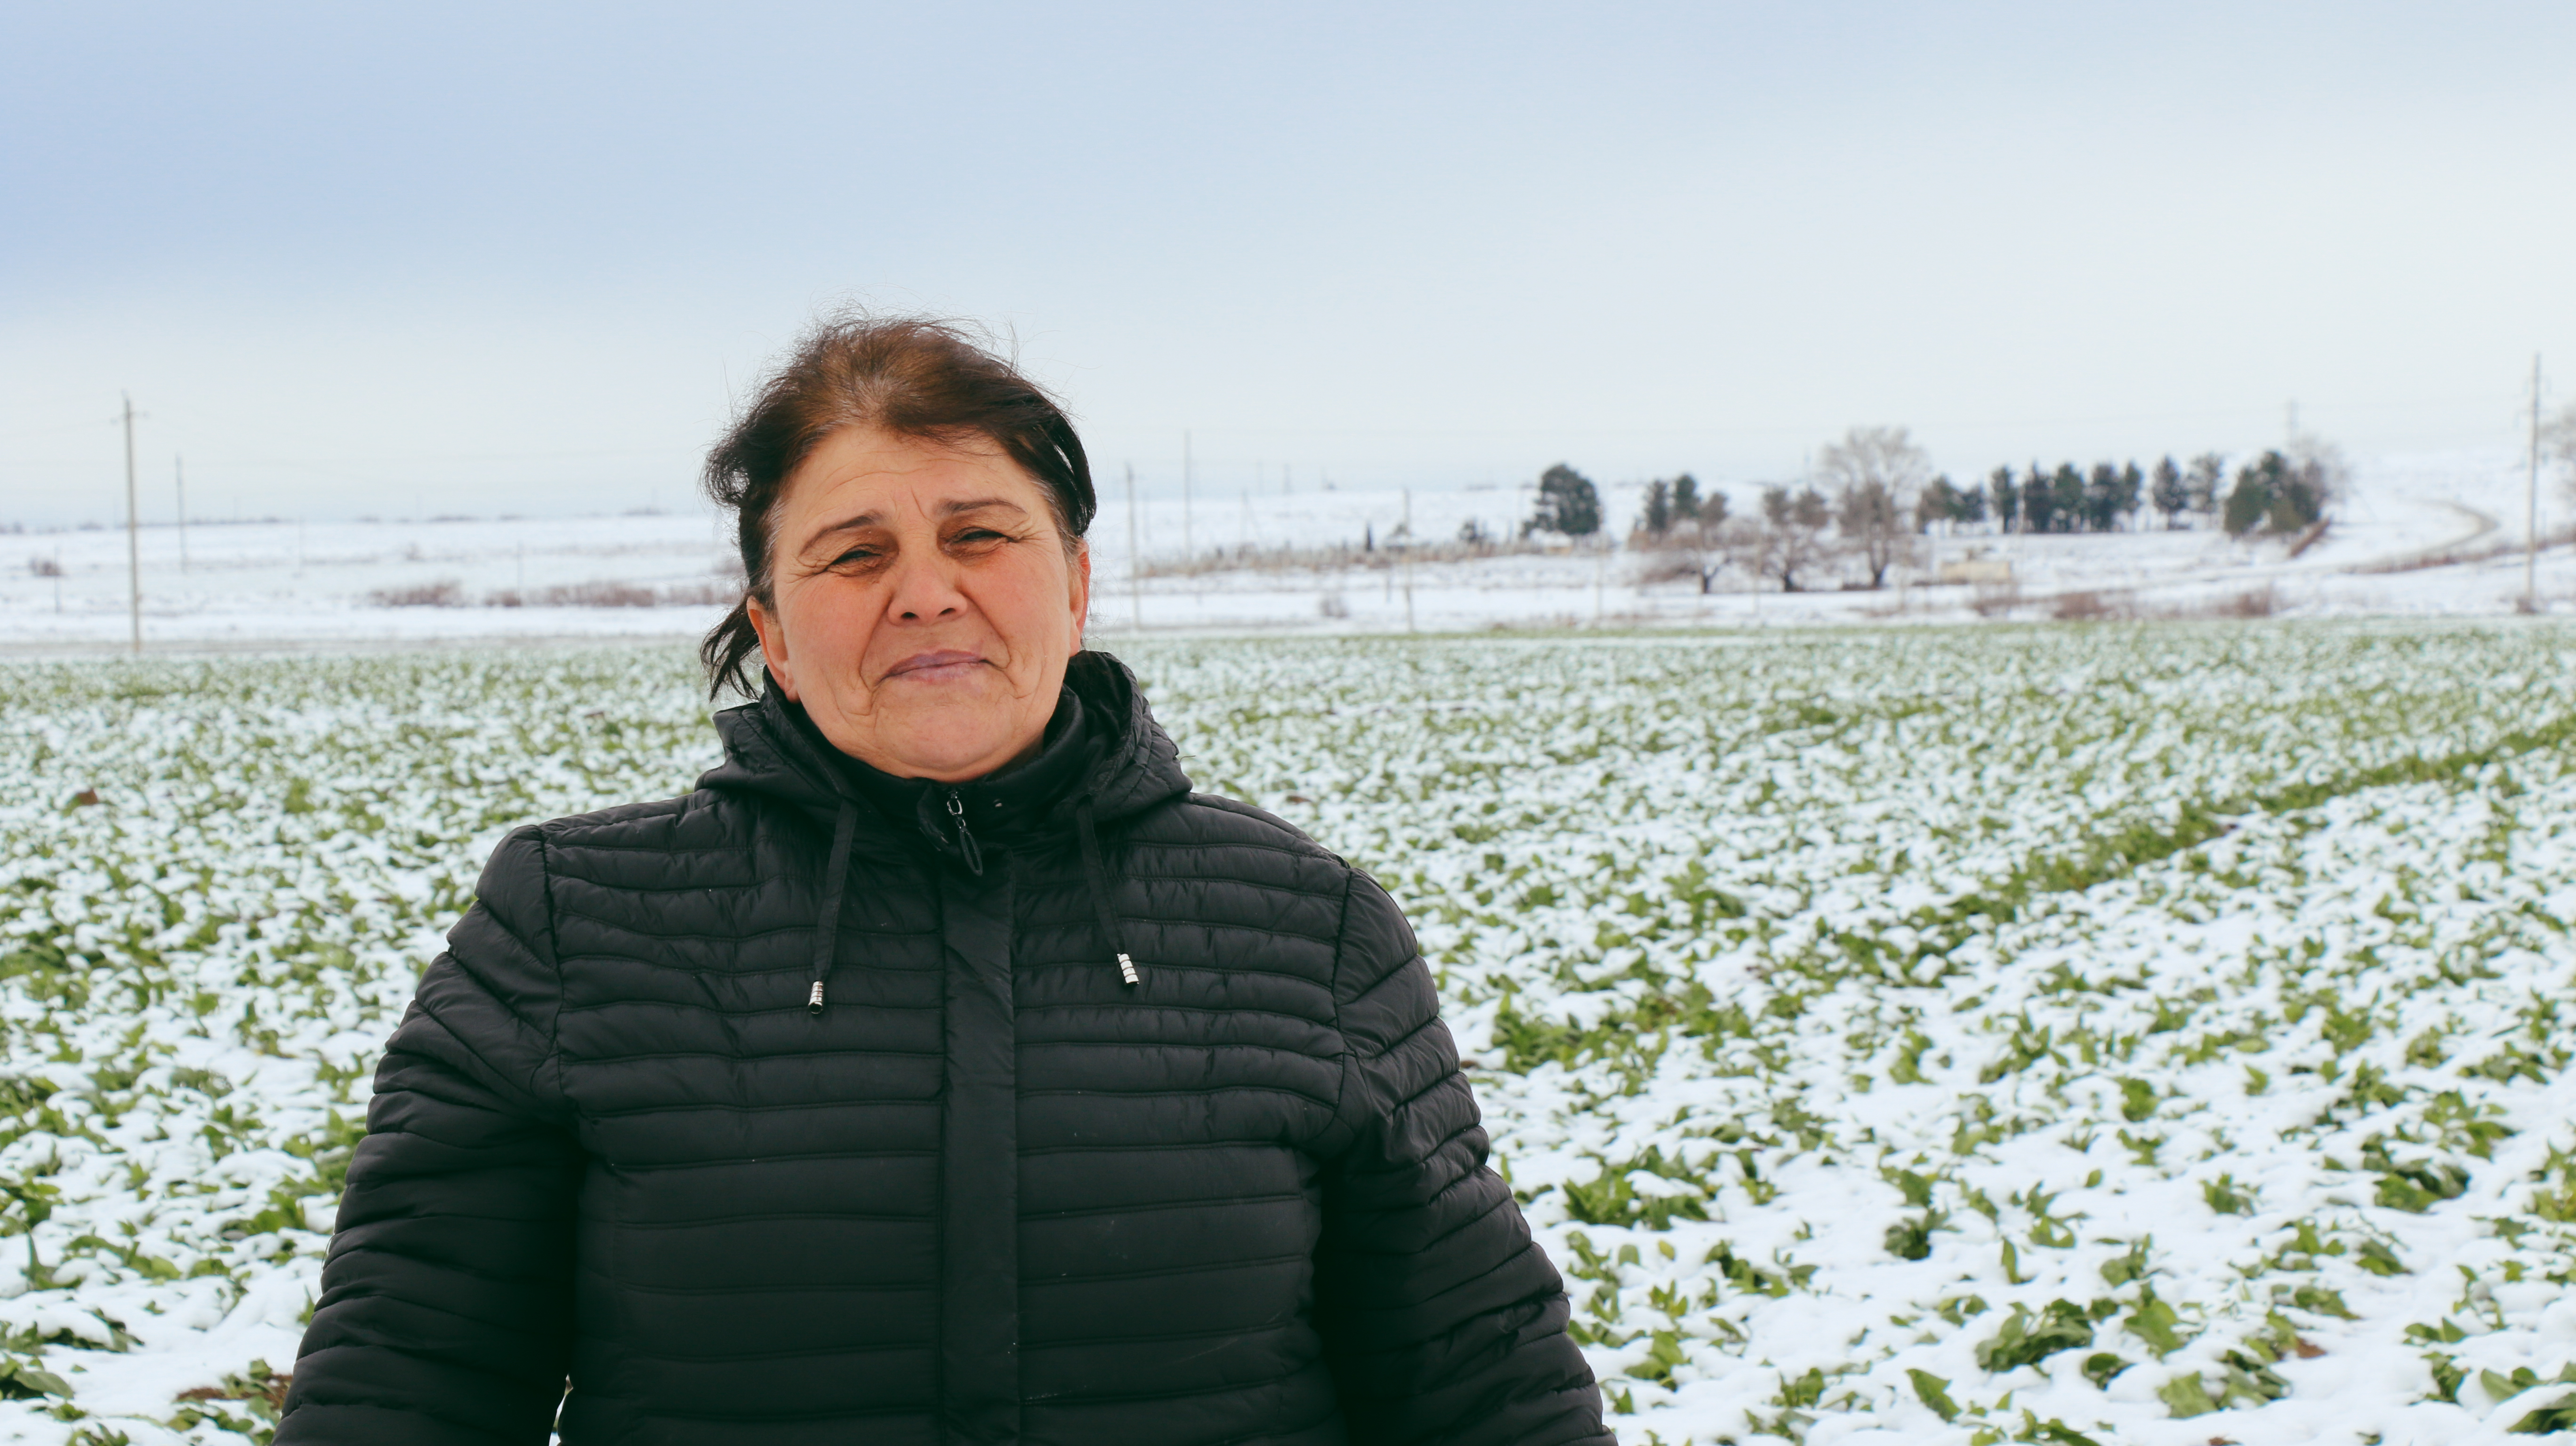 Female farmers need a stronger voice for equality